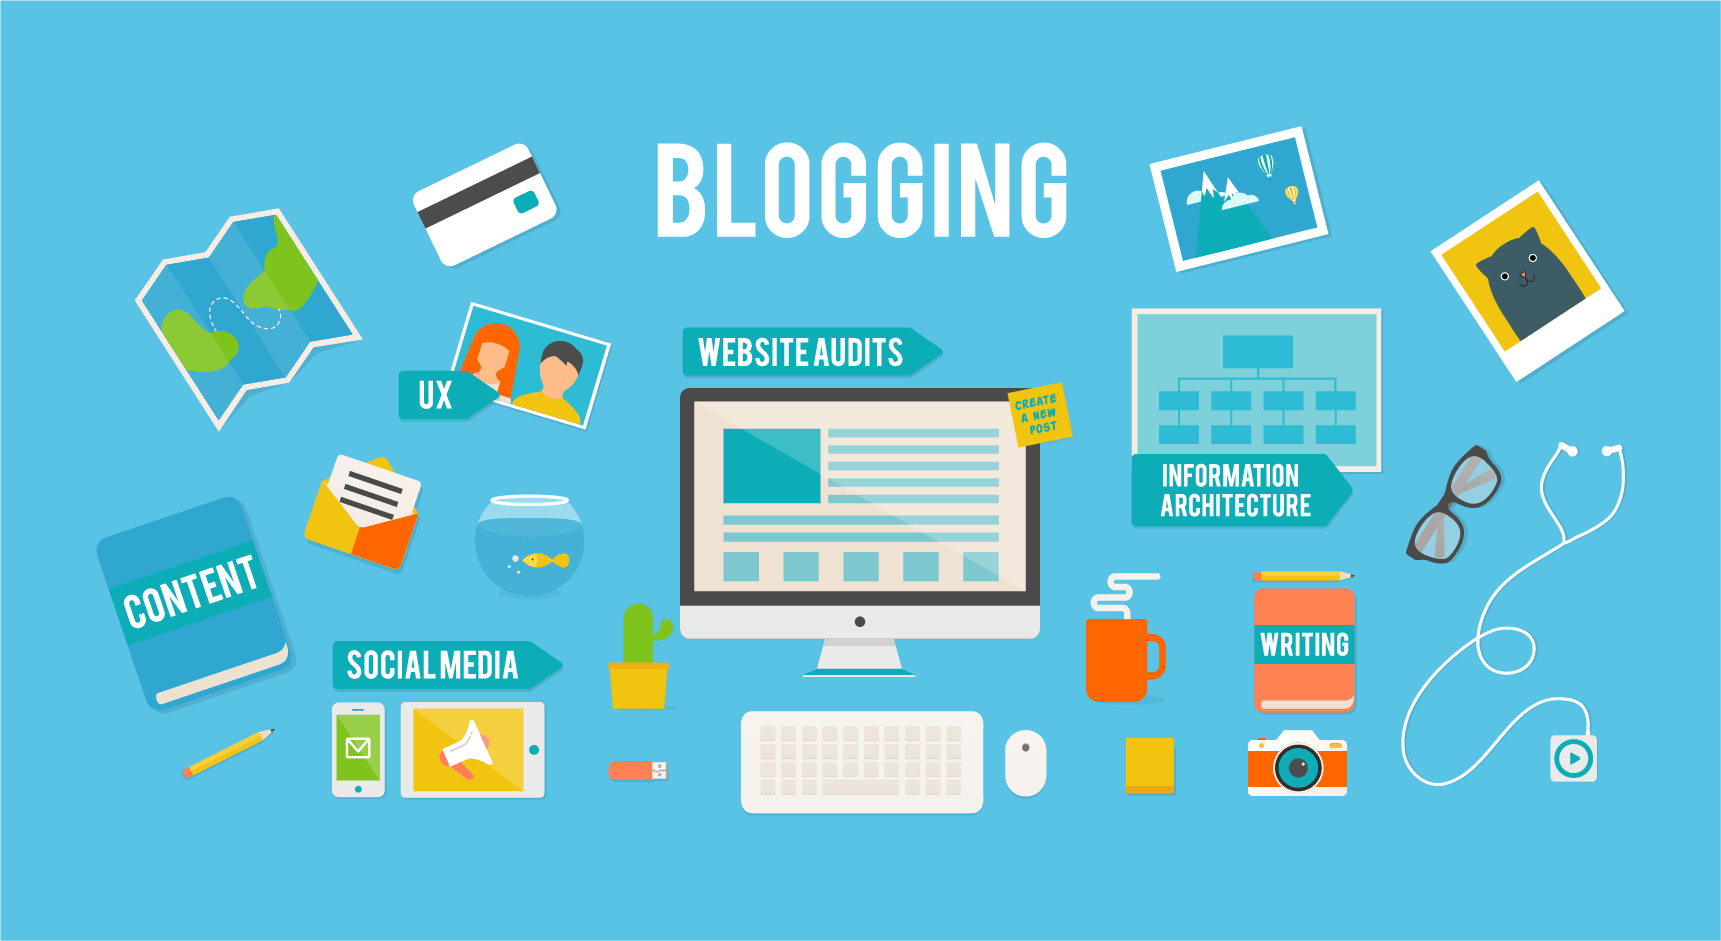 blogging-stats-featured